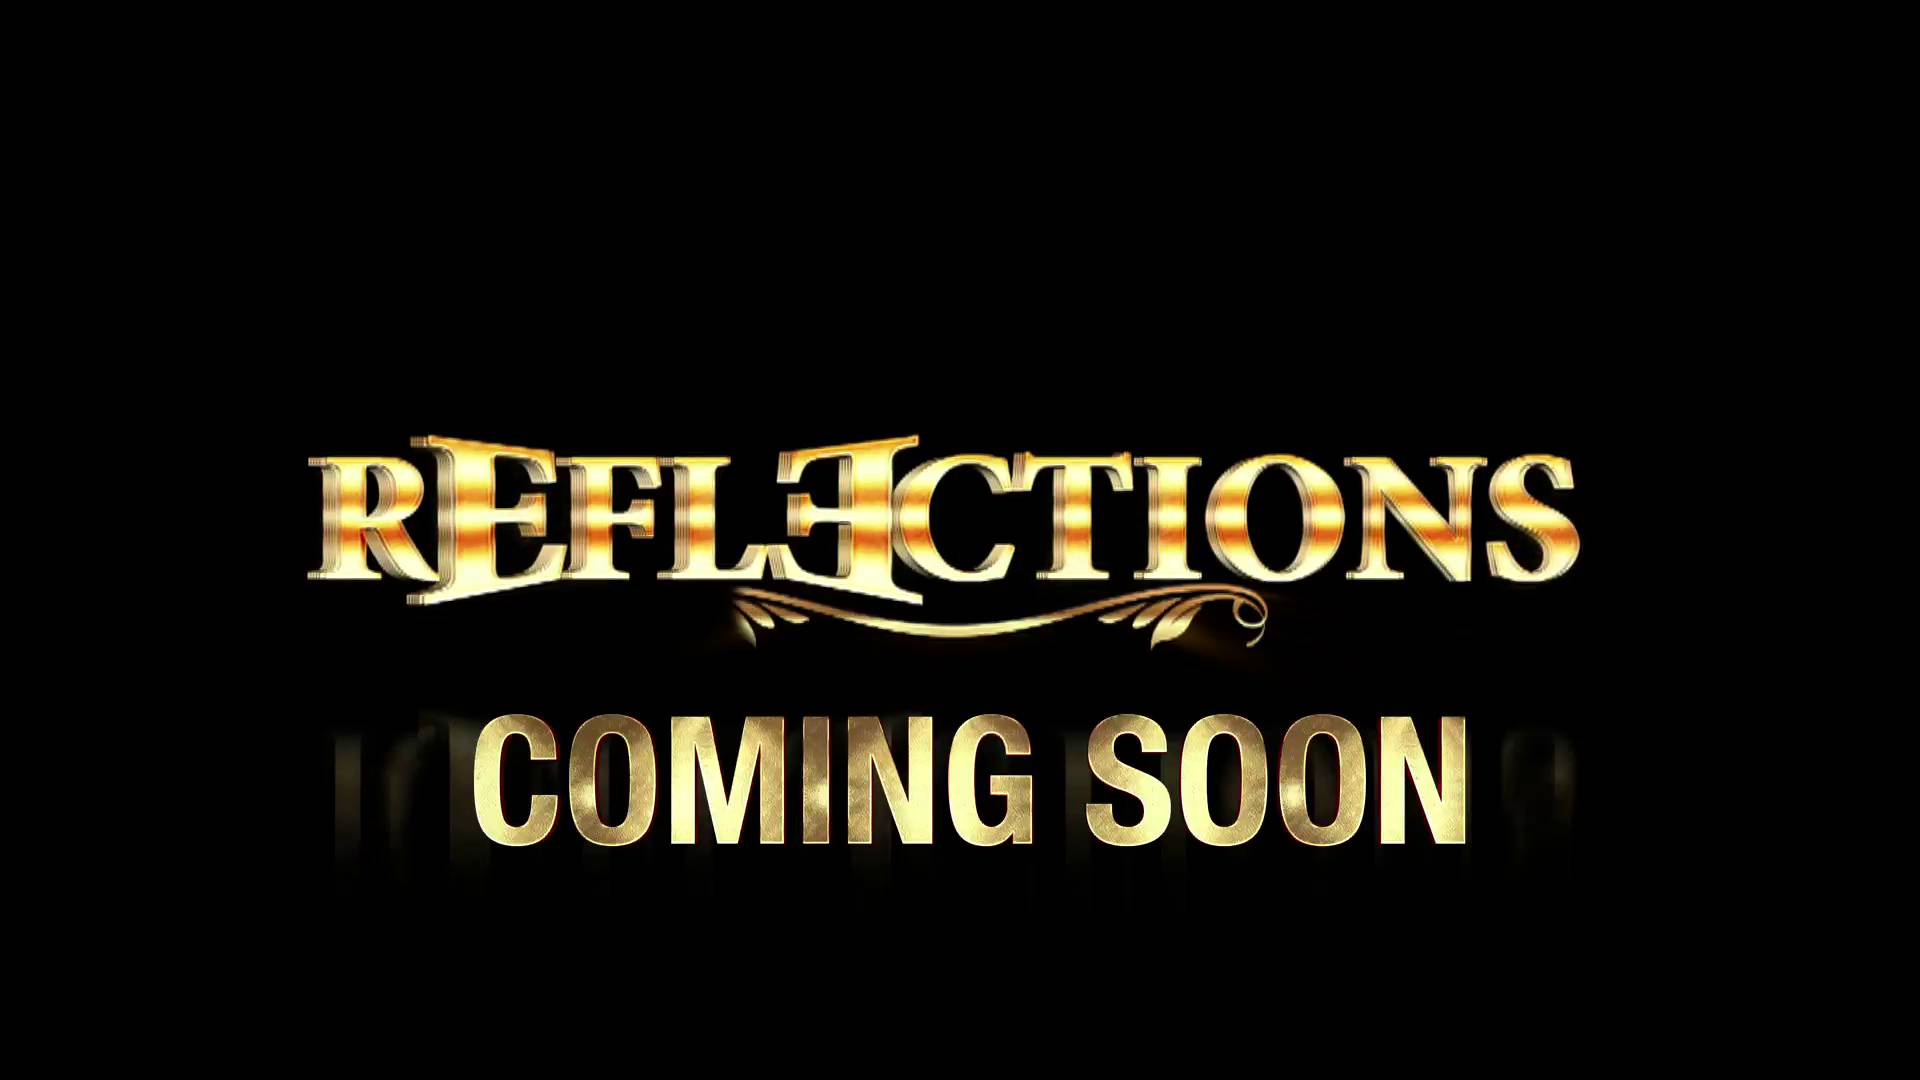 Reflections Coming Soon